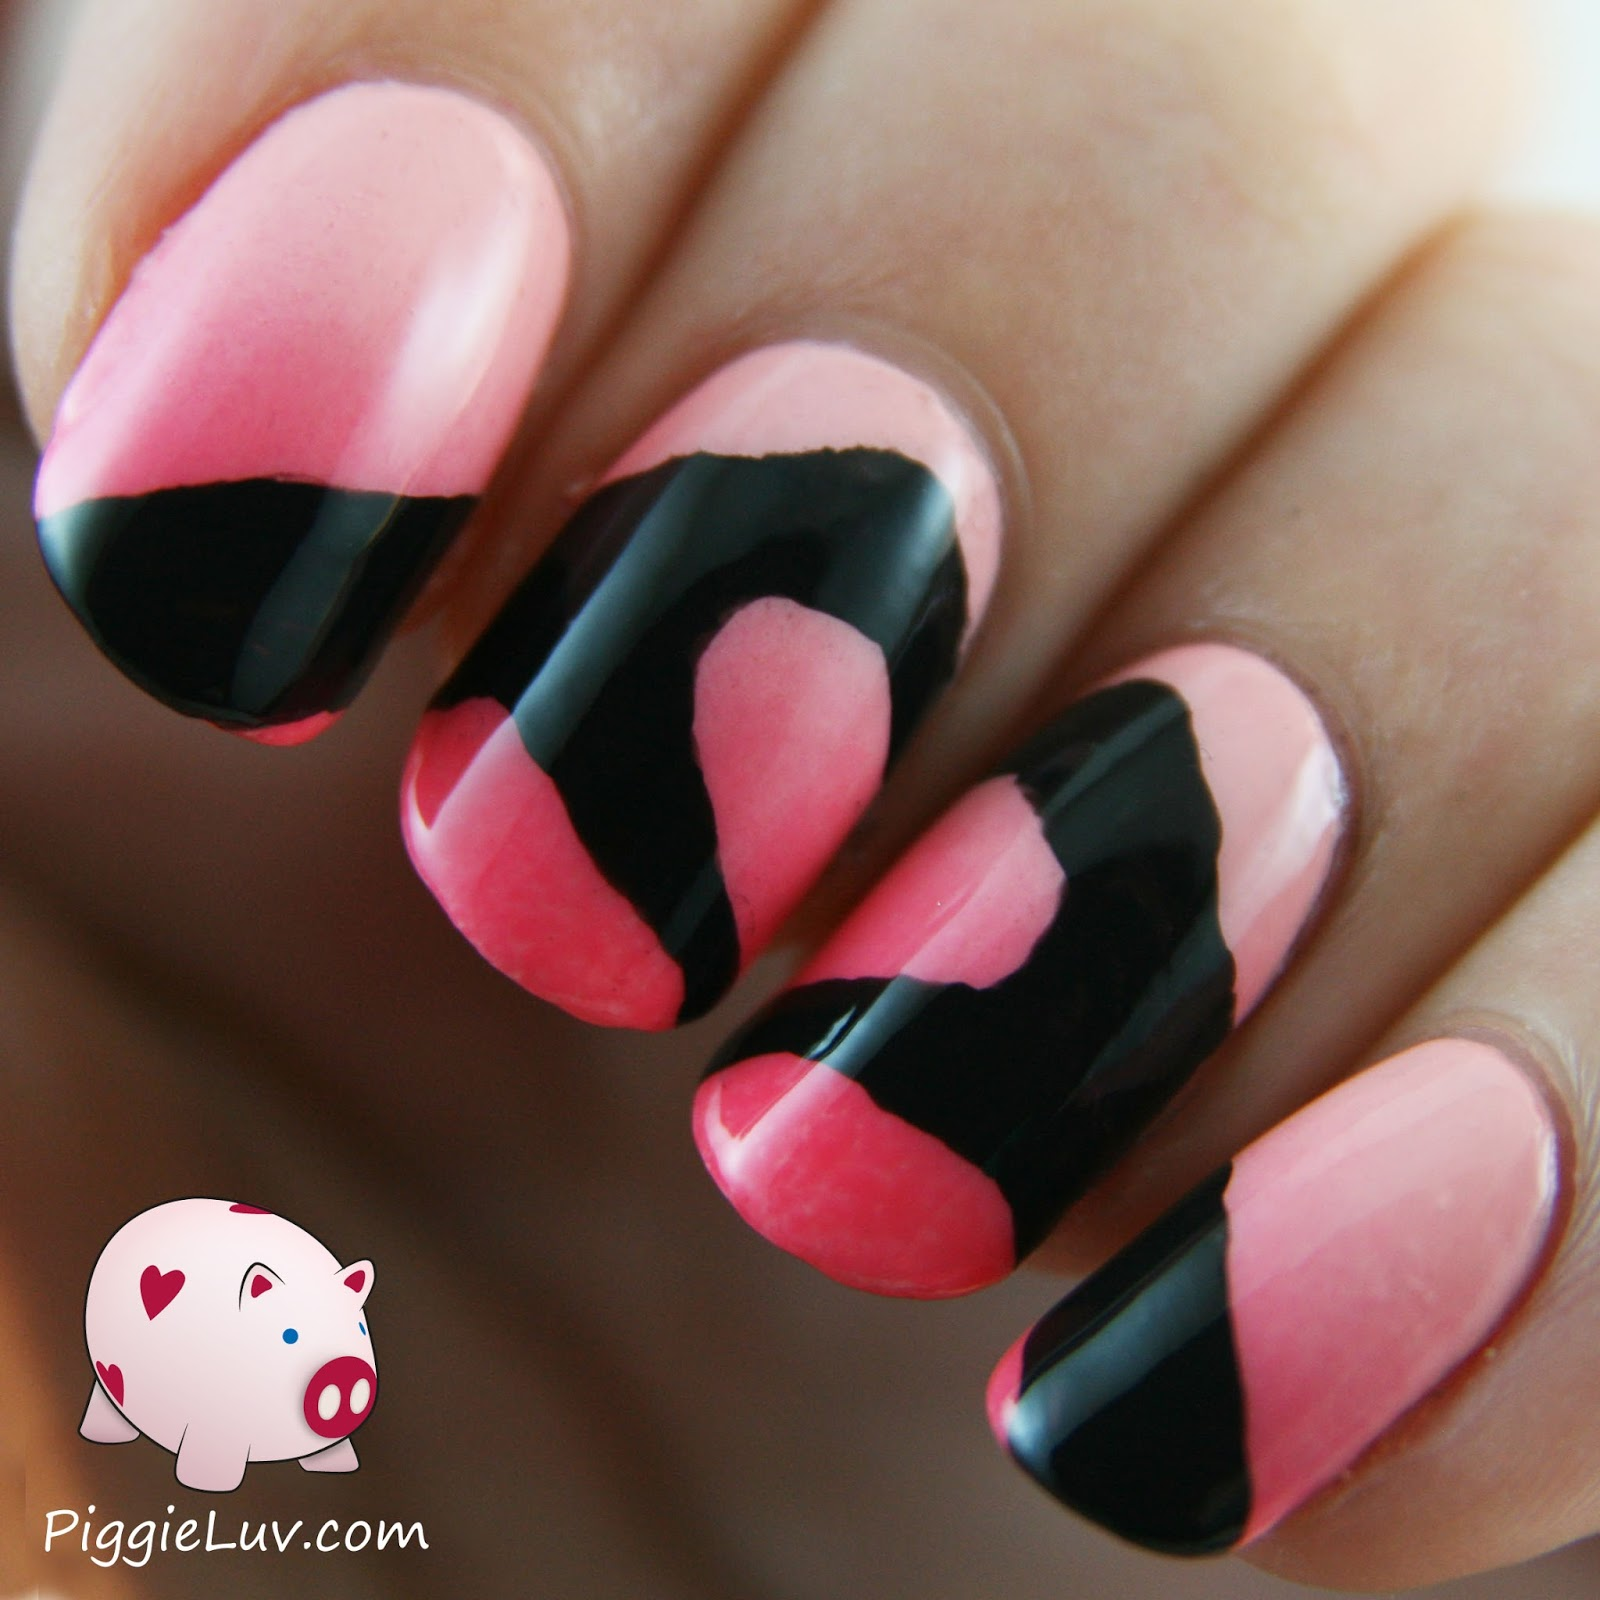 Heart Nail Art: PiggieLuv: Hands Making A Heart Nail Art